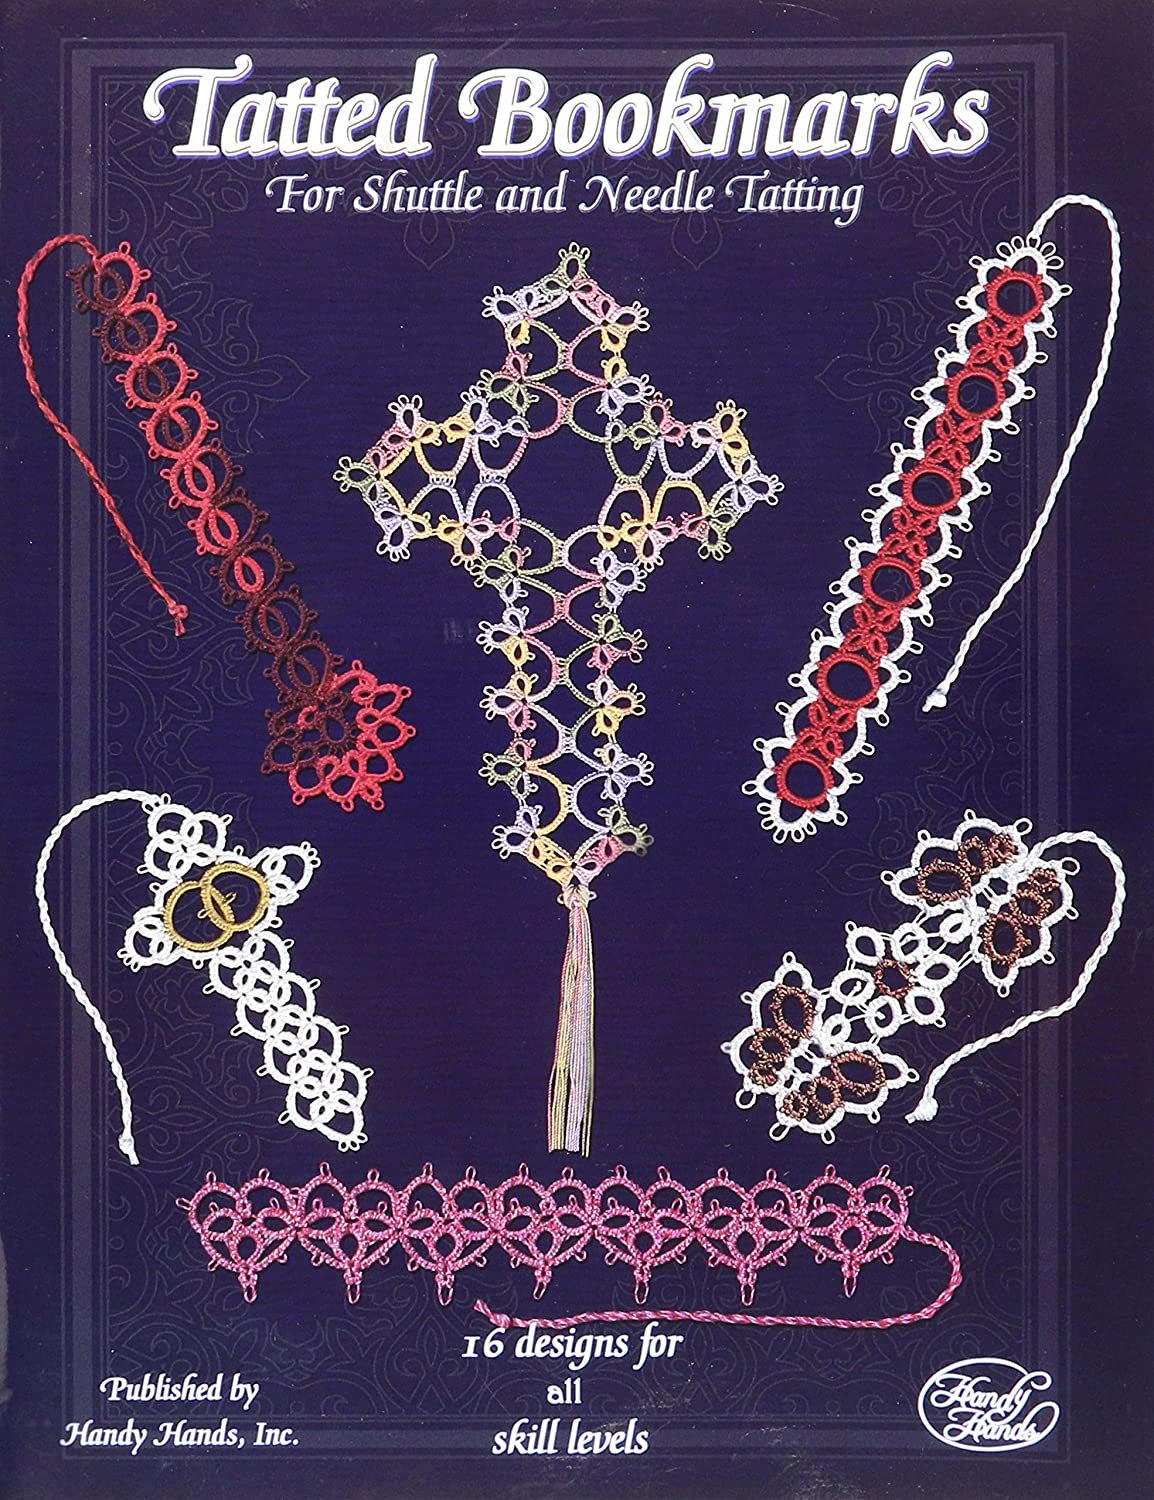 Handy Hands HA-32103 Craft Supplies Tatted Bookmarks Needle and Shuttle T199